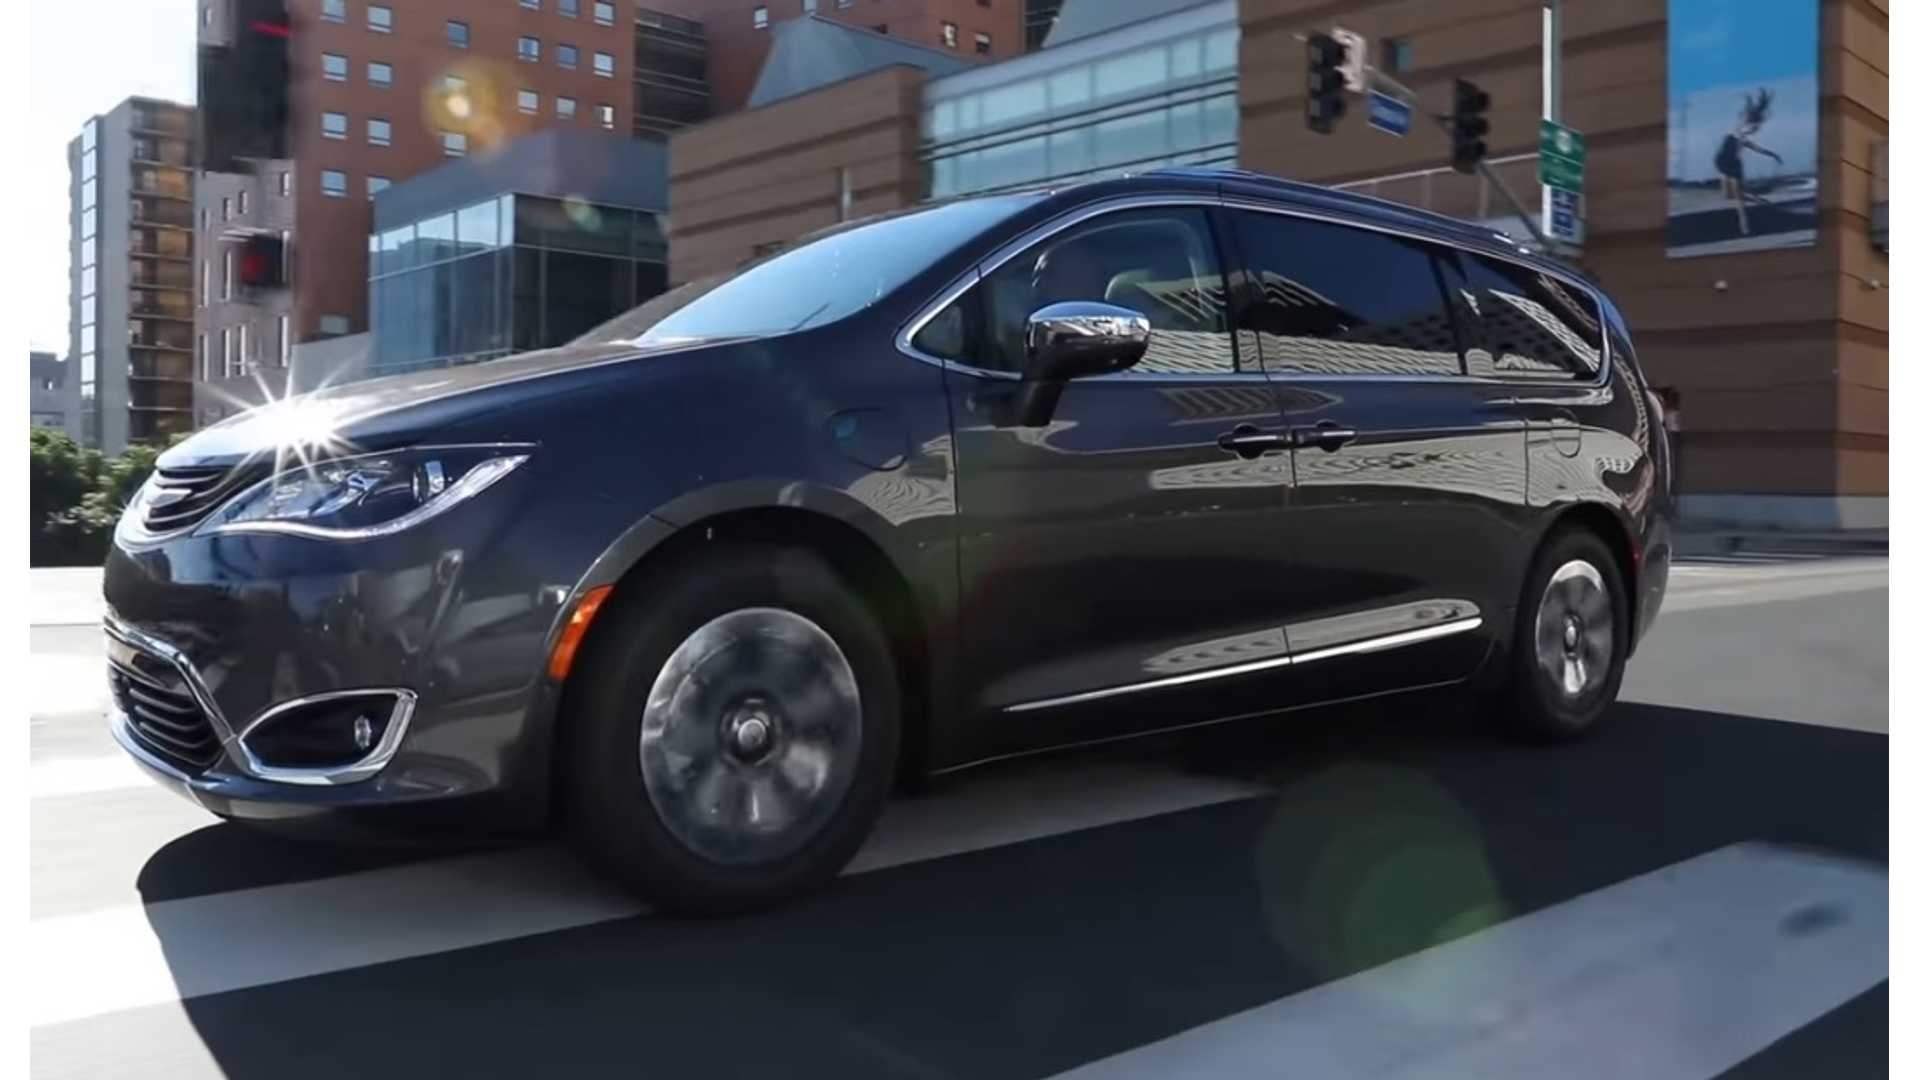 Chrysler Pacifica Hybrid Ships To Dealers April 17 Launch Event On The 19th